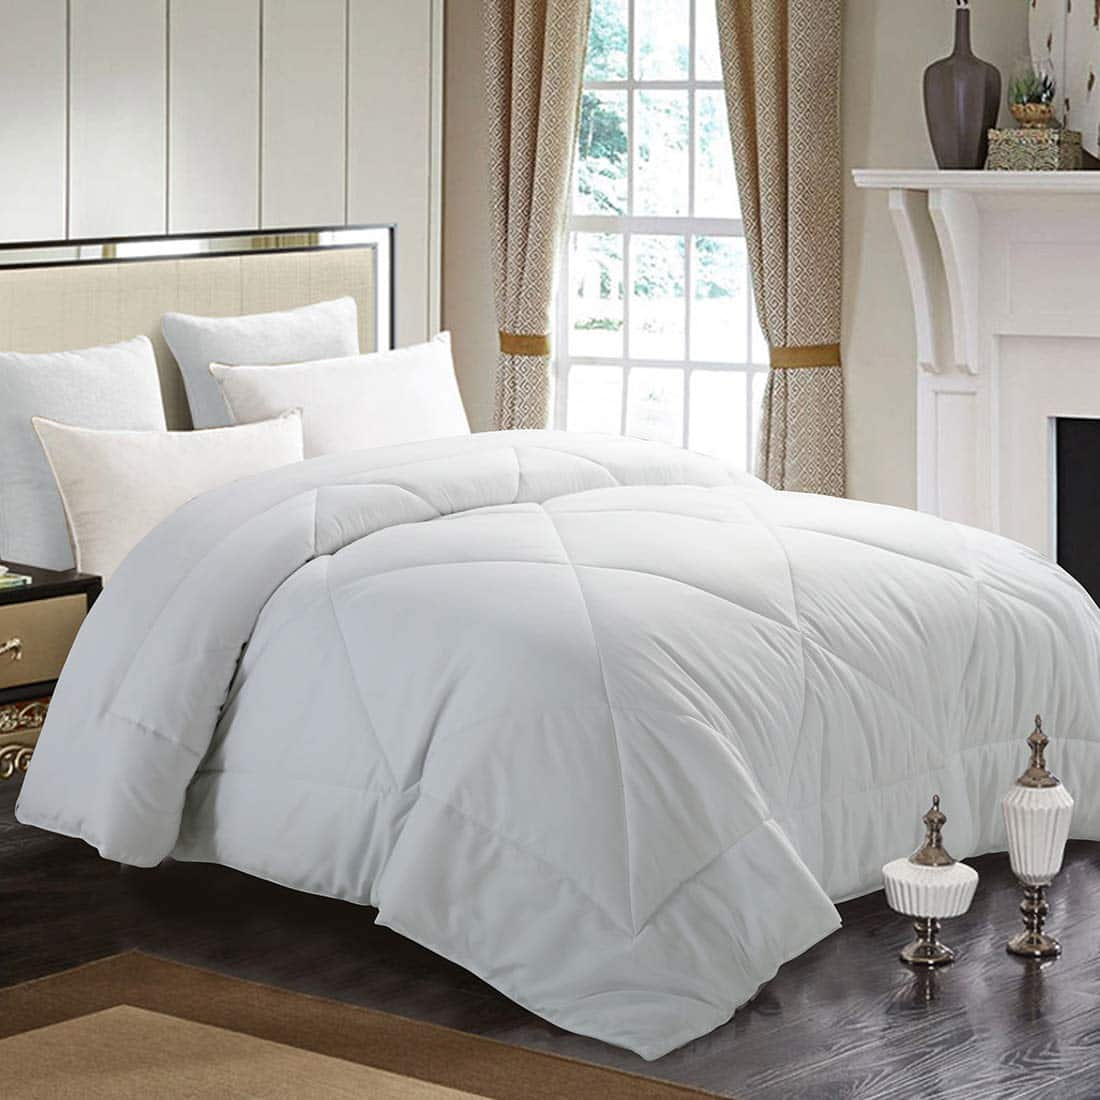 INGALIK All Season Down Alternative Quilted Comforter (Twin or Queen) from $32.19 + free S/H